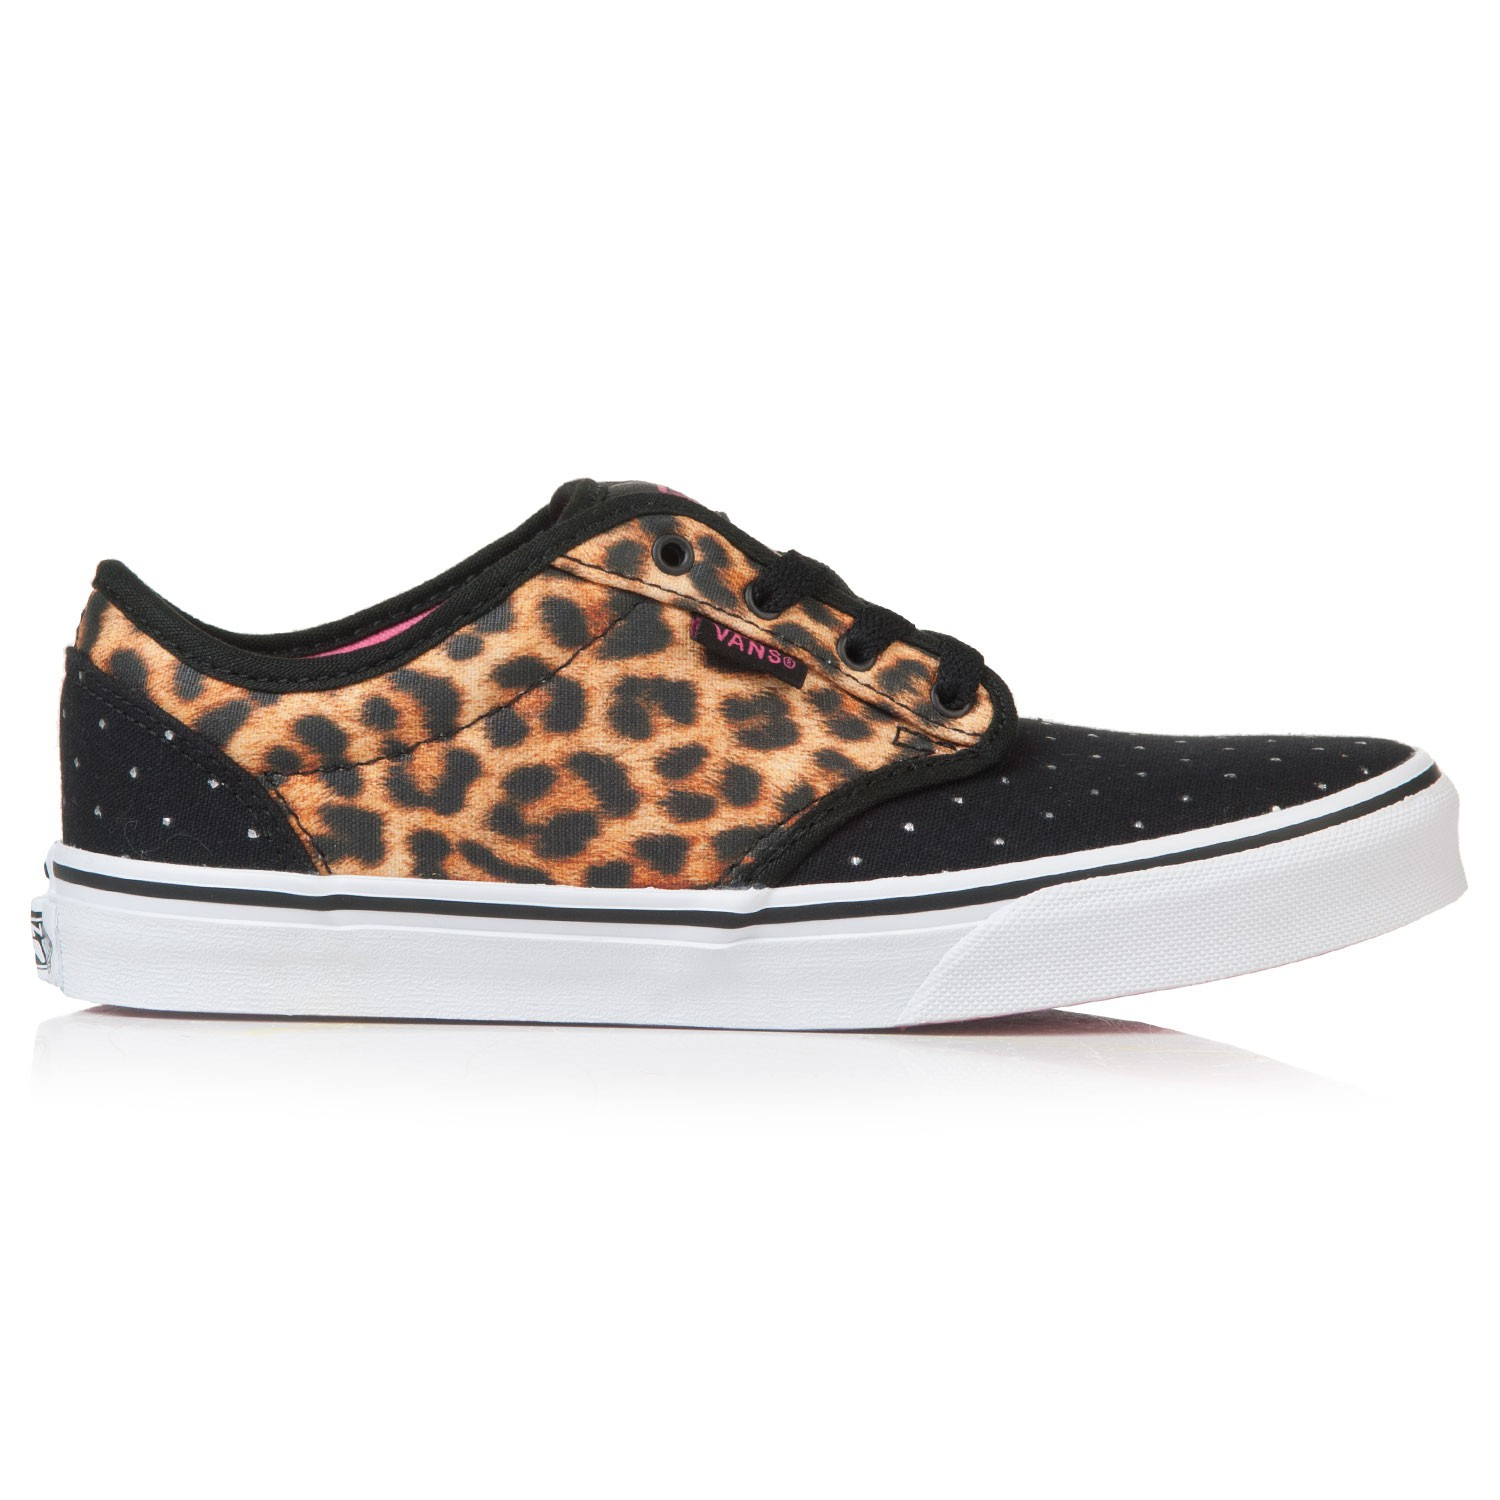 atwood black single women Buy vans black women's atwood lace-up sneakers, starting at $55 similar products also available sale now on.